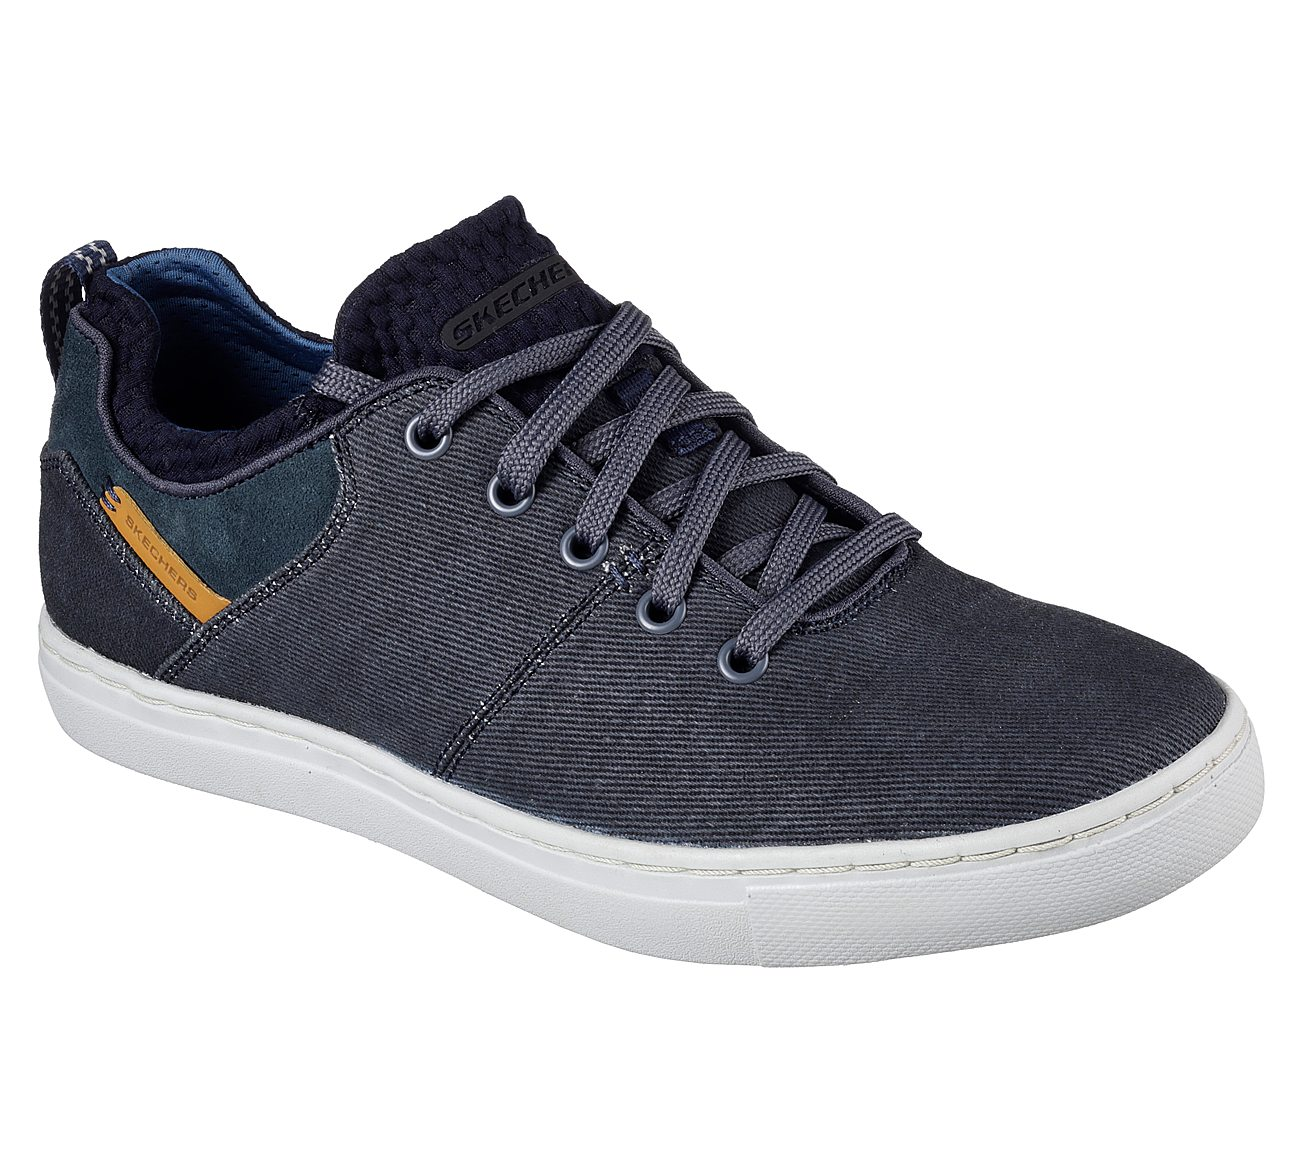 b943116eb42e Buy SKECHERS Alven - Ravago USA Casuals Shoes only  60.00